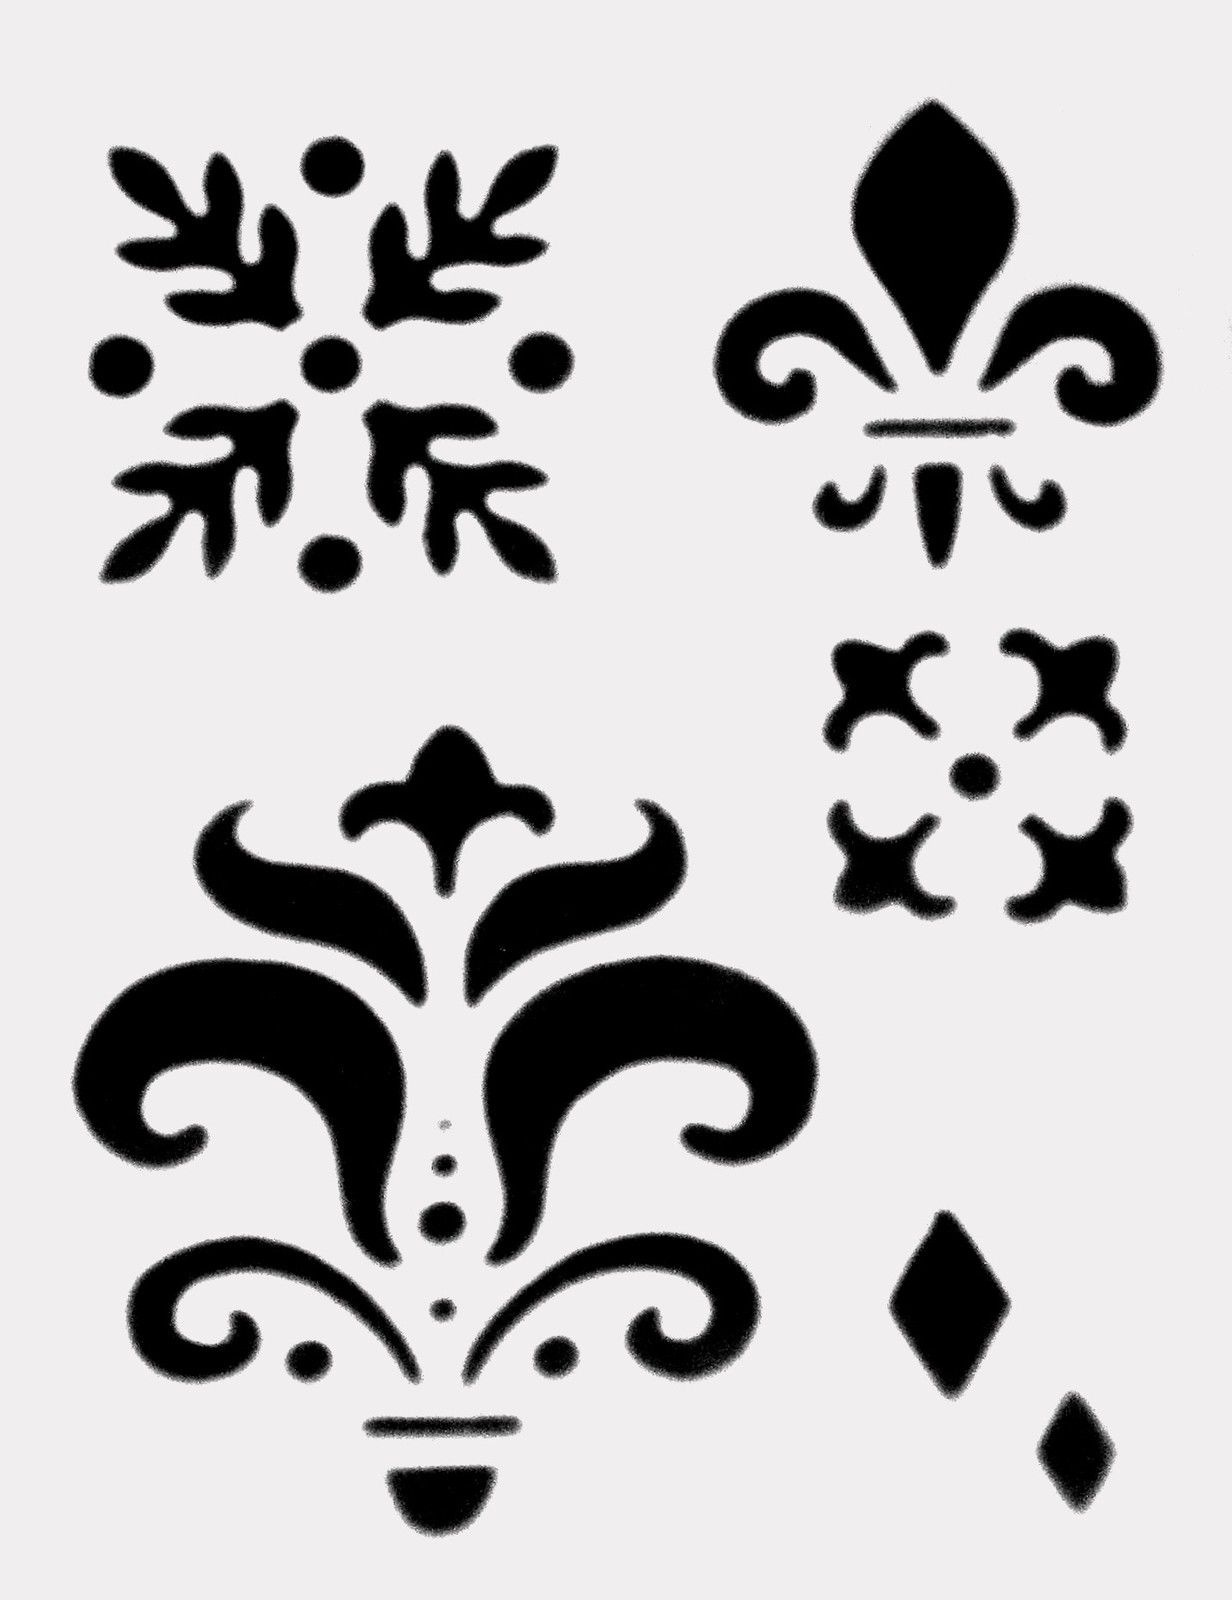 Fleur De Lis Stencil Pattern Group With 81+ Items - Damask Stencil Printable Free